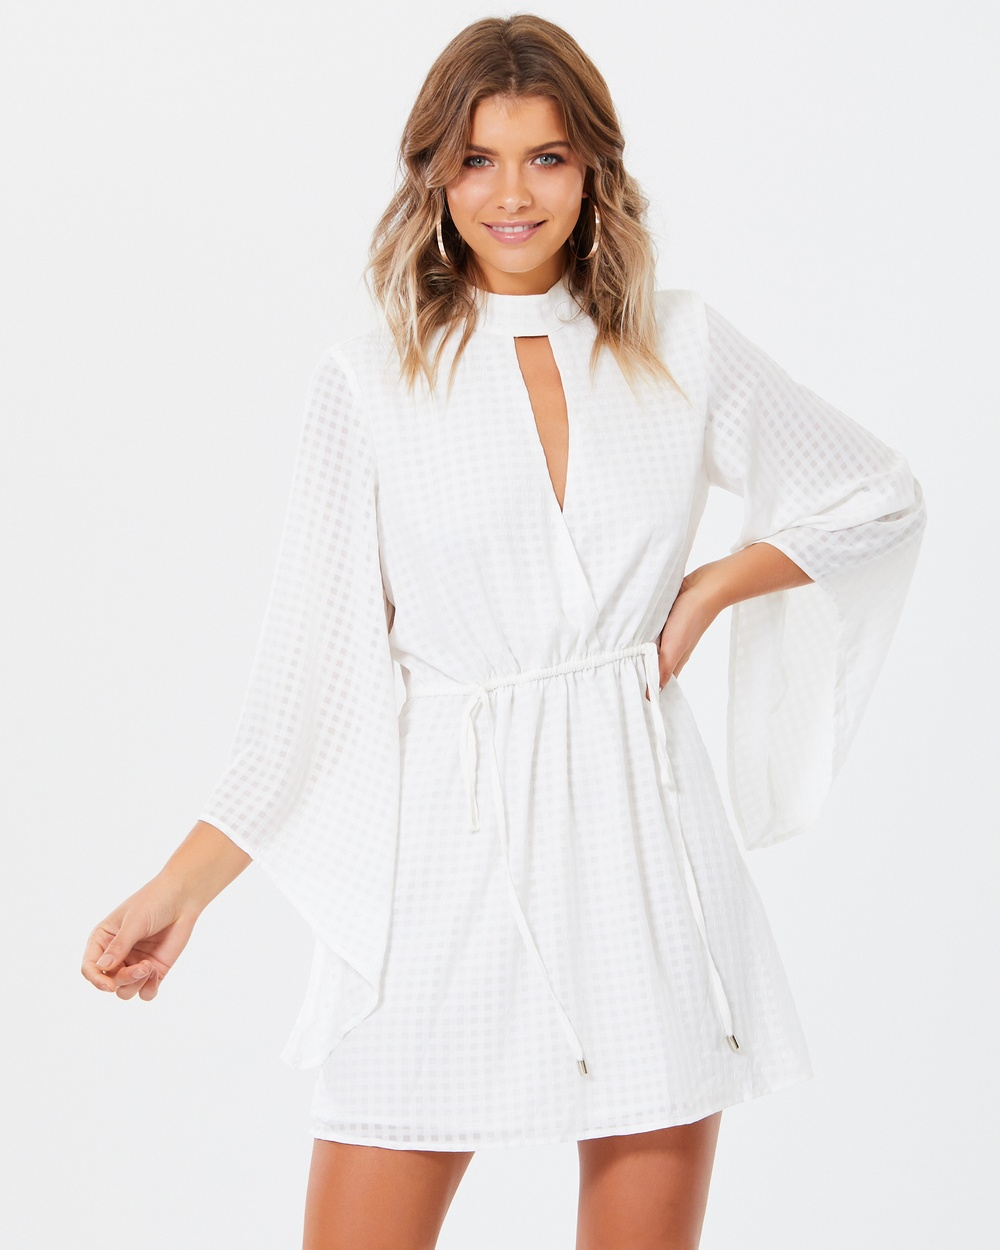 Tussah Portia Mini Dress Dresses White Portia Mini Dress